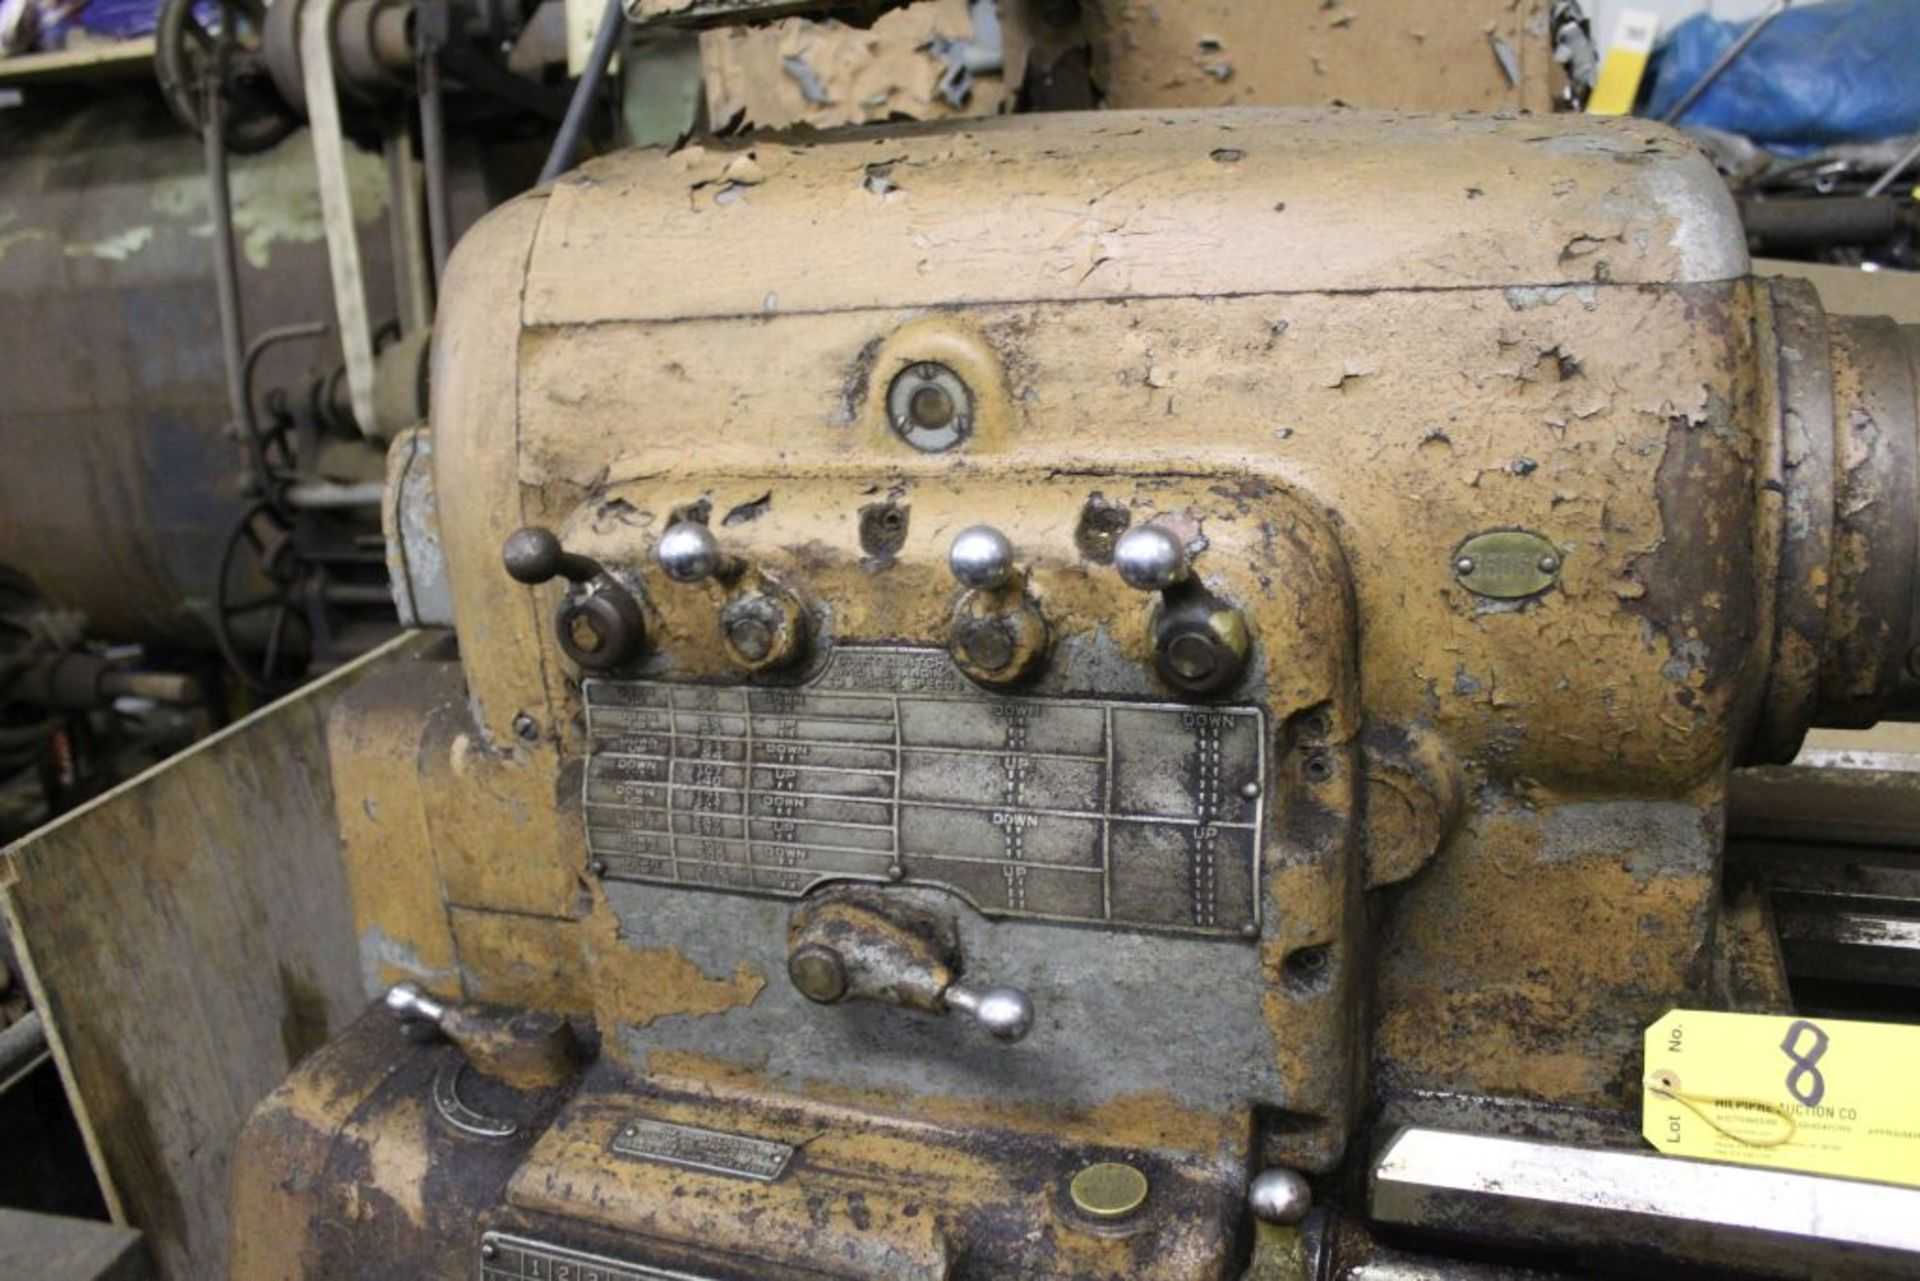 """1960 Monarch engine lathe, model 61, sn 44310-AT, 13 x 54, 20 1/2"""" swing, 79"""" bed, 55"""" center to - Image 5 of 8"""